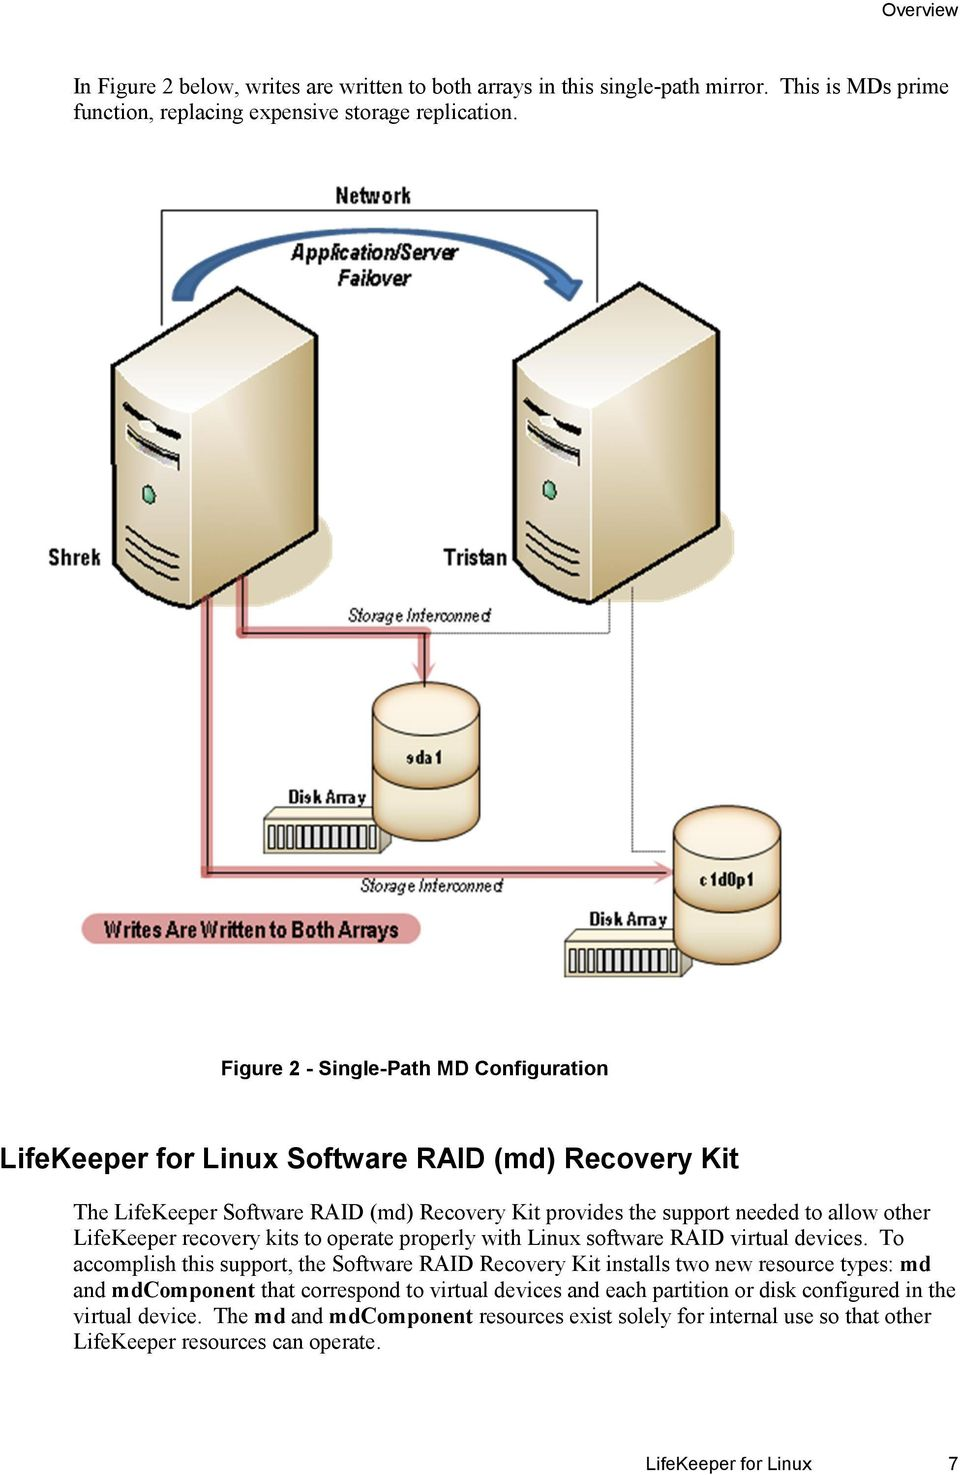 LifeKeeper recovery kits to operate properly with Linux software RAID virtual devices.